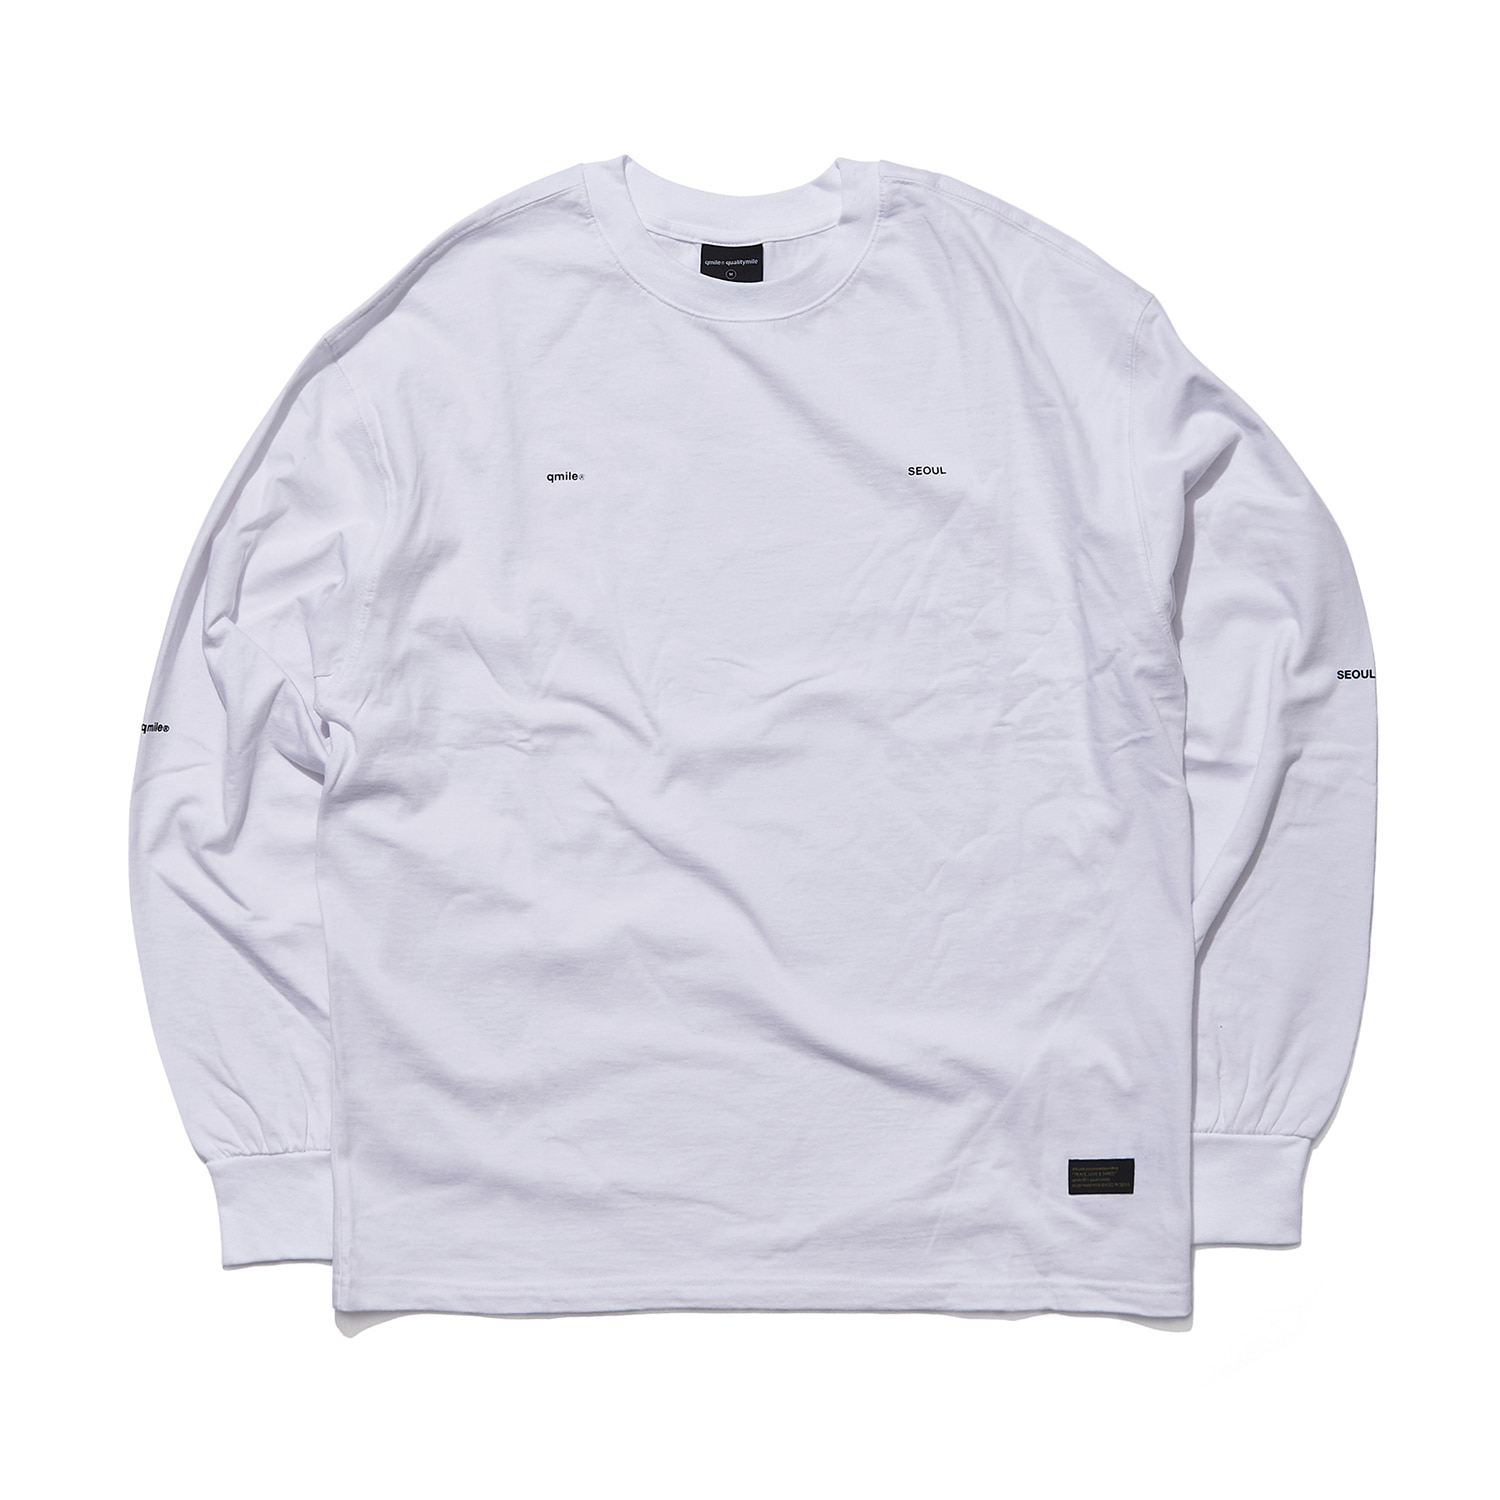 QS (qmile seoul) long sleeve white